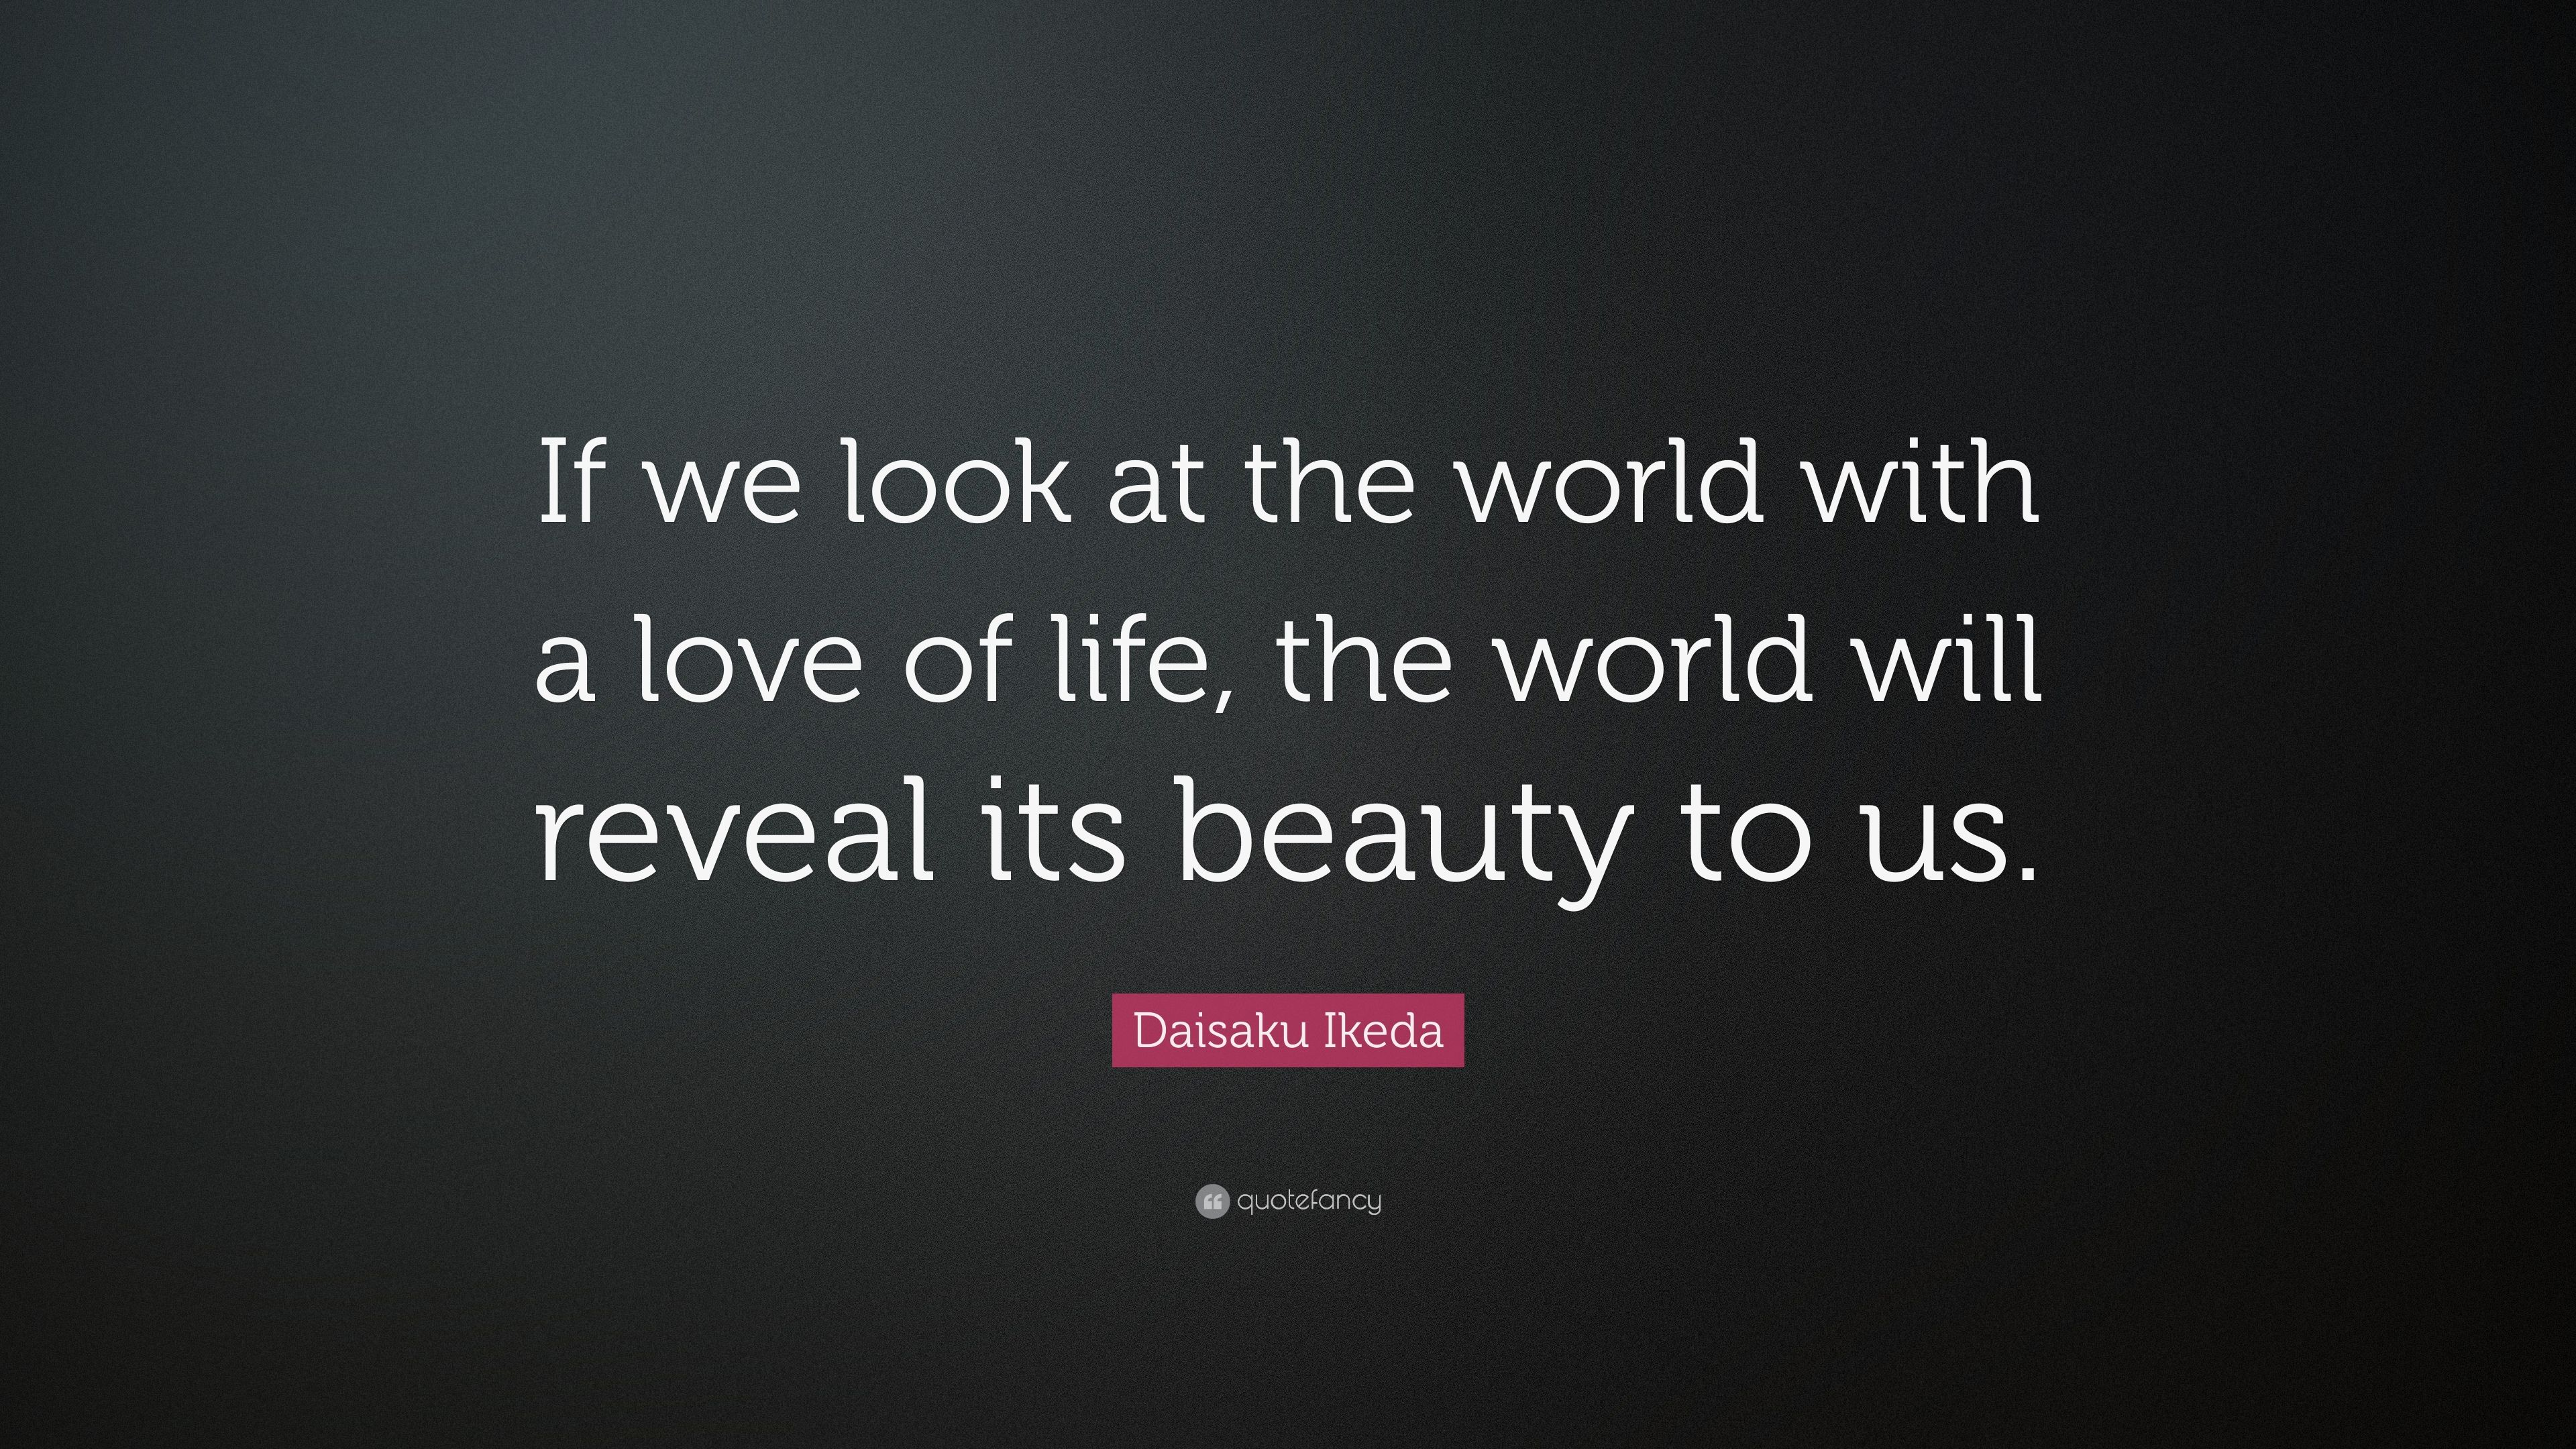 Daisaku Ikeda Quote If We Look At The World With A Love Of Life